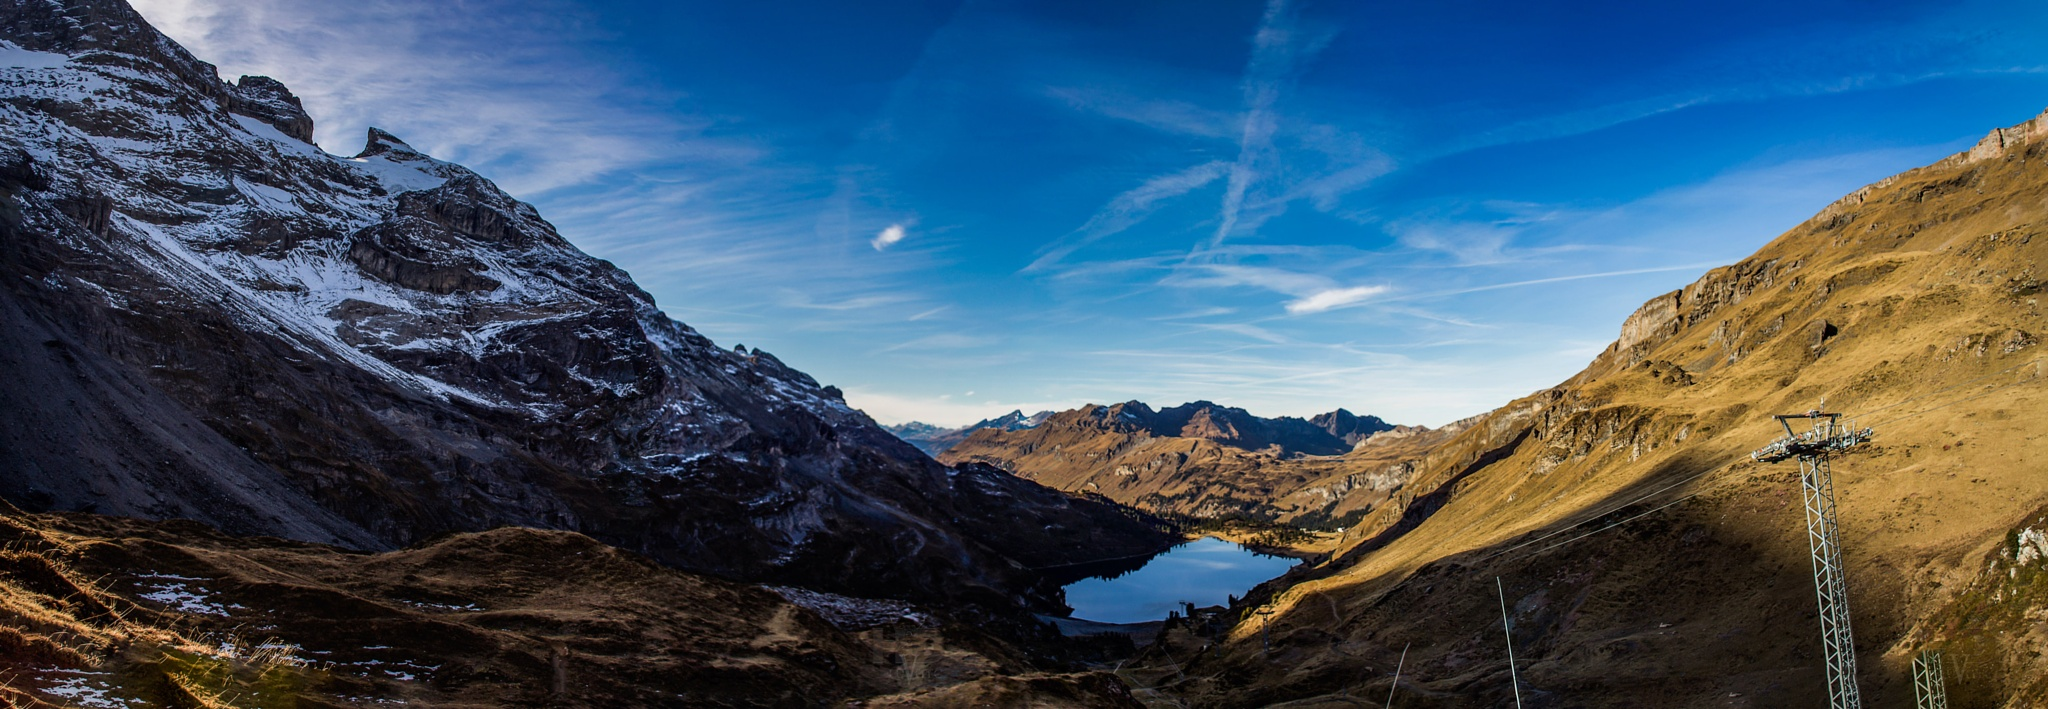 Panorama Enstlensee by dhabluetzel